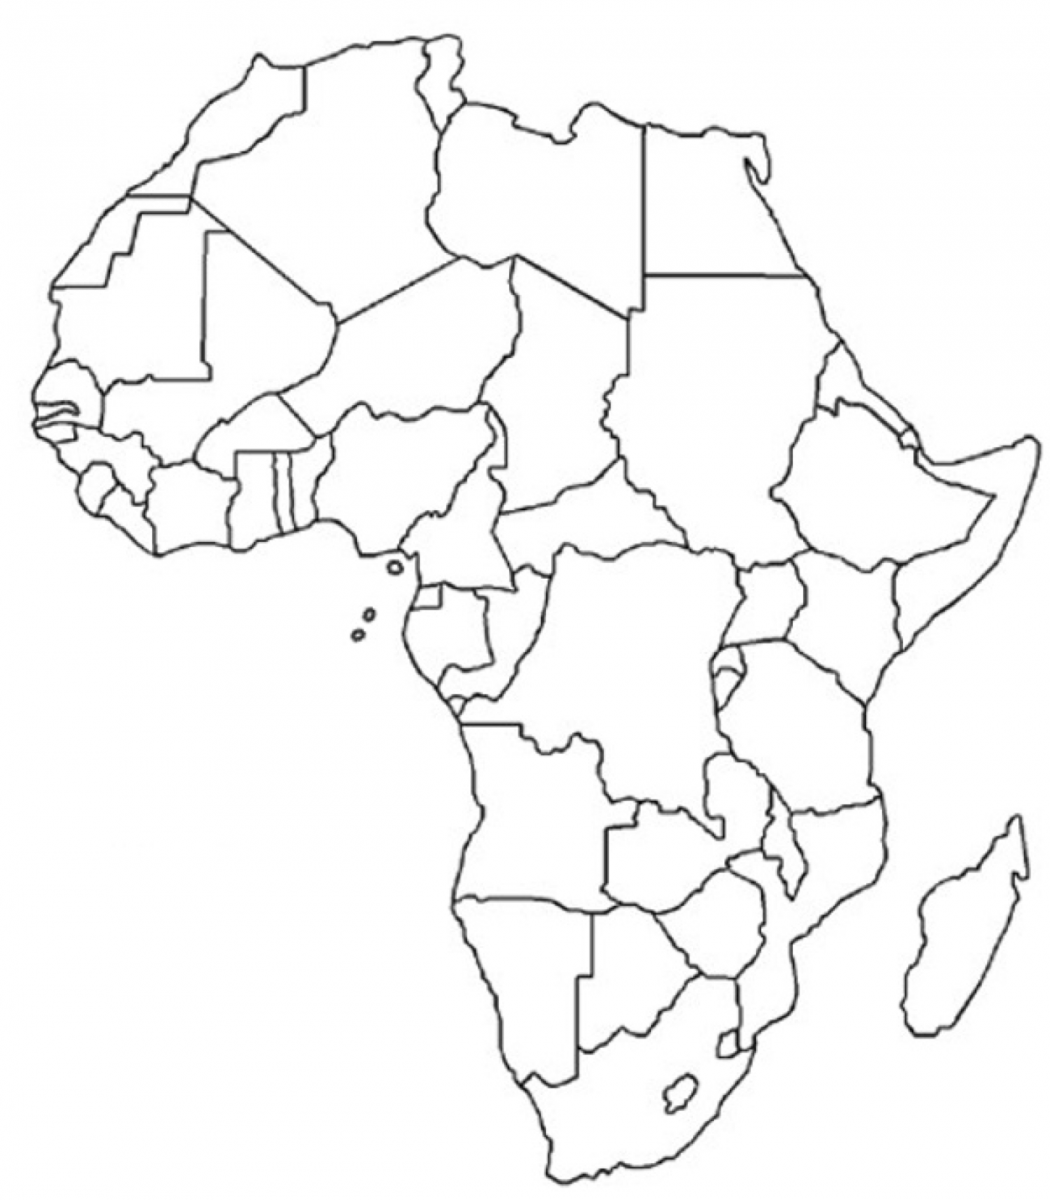 blank map of africa unit on african music have the kids fill in color in countries after listening to the music from each